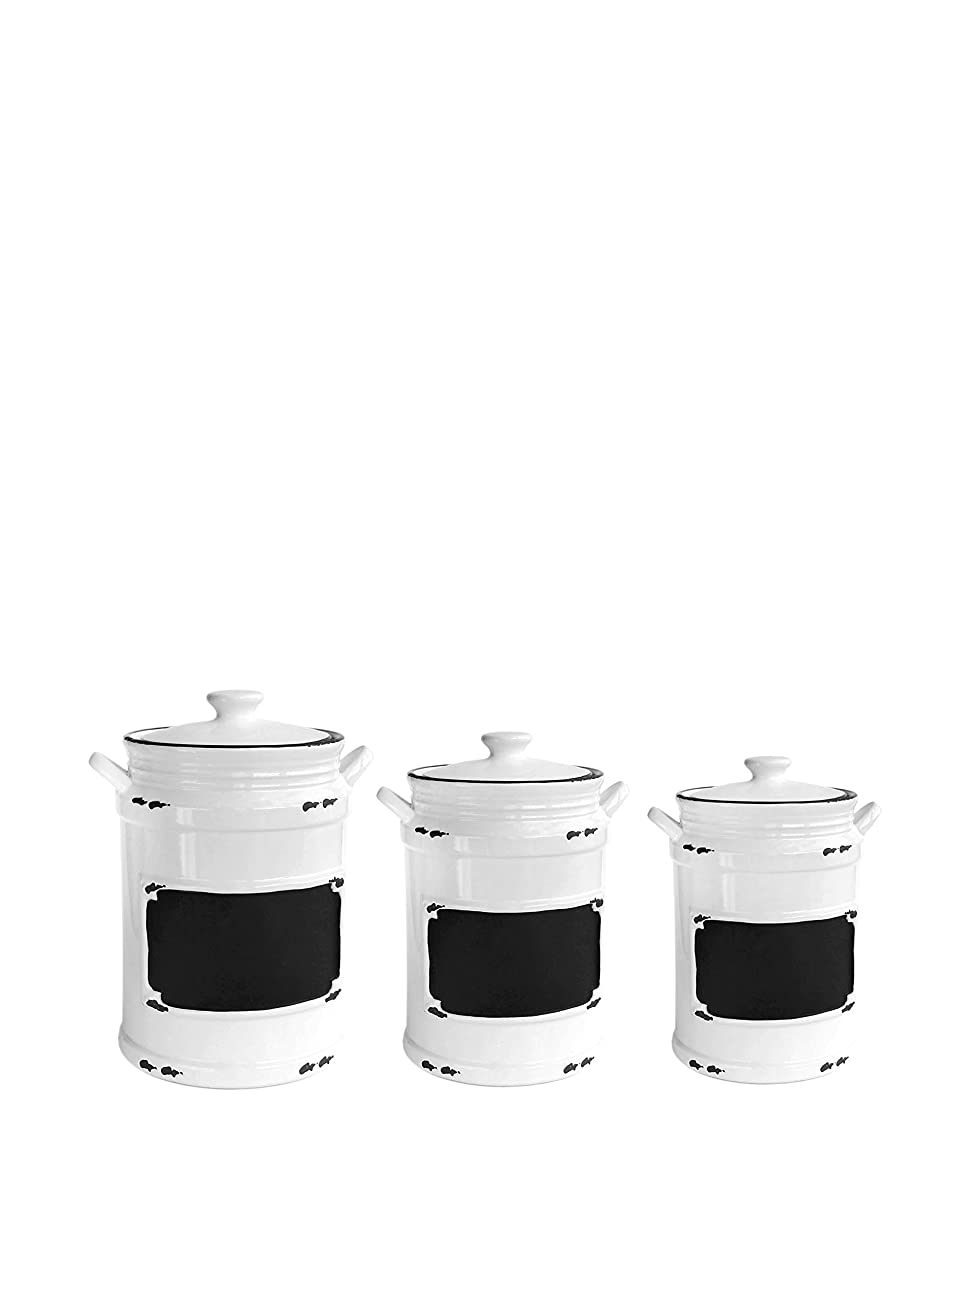 American Atelier 3 Piece Vintage Canister Set, Black 0